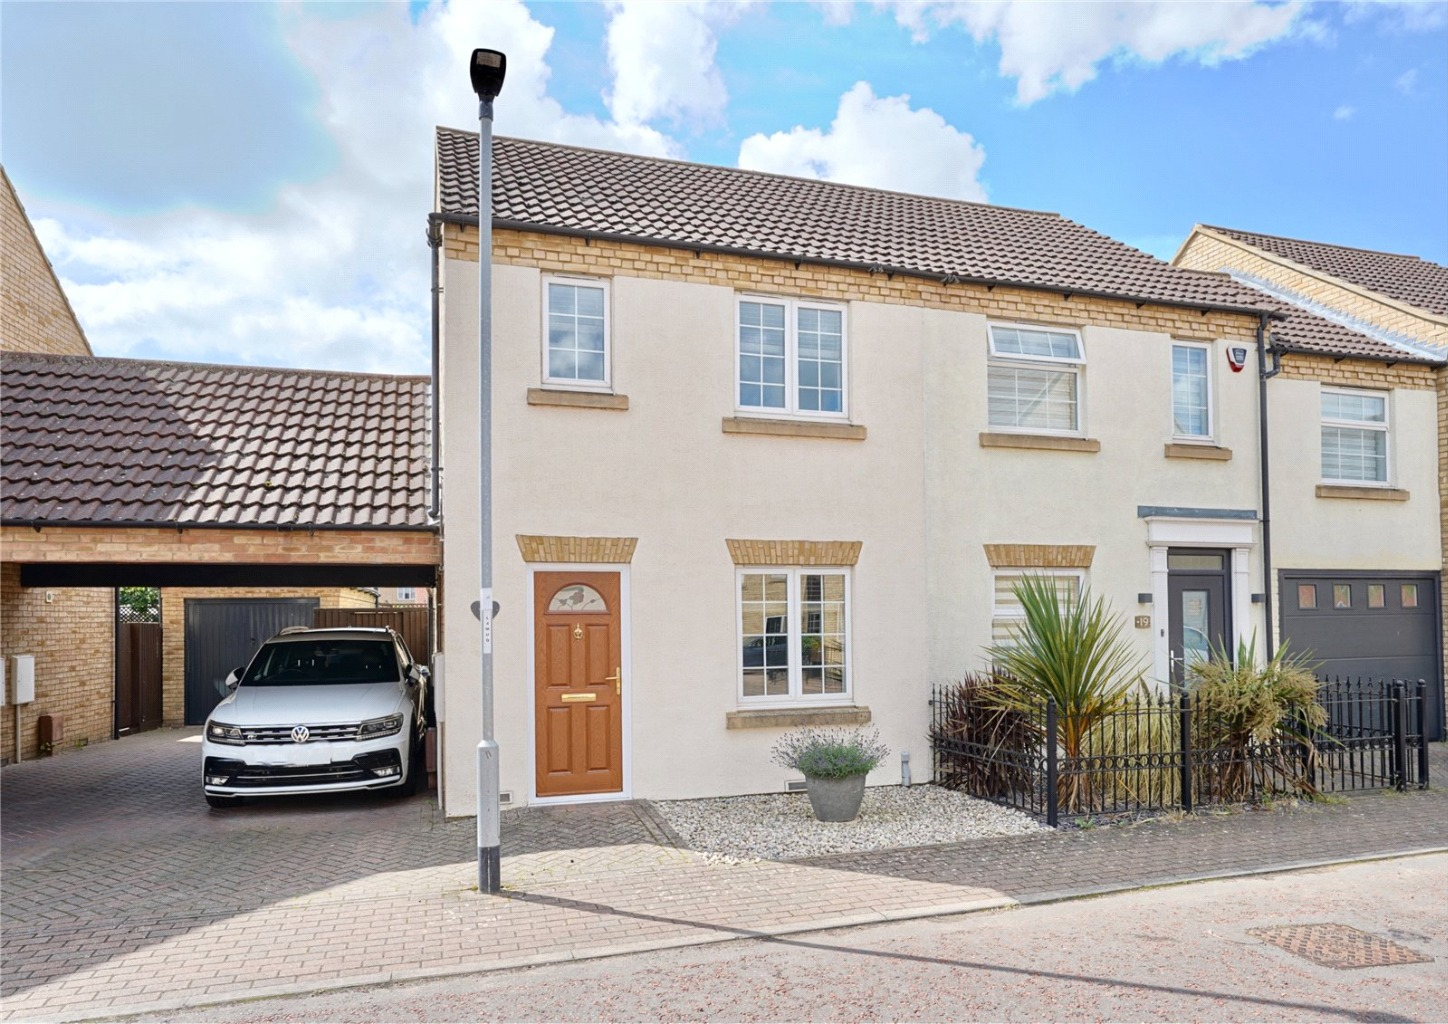 2 bed semi-detached house for sale in Ream Close, St. Neots - Property Image 1